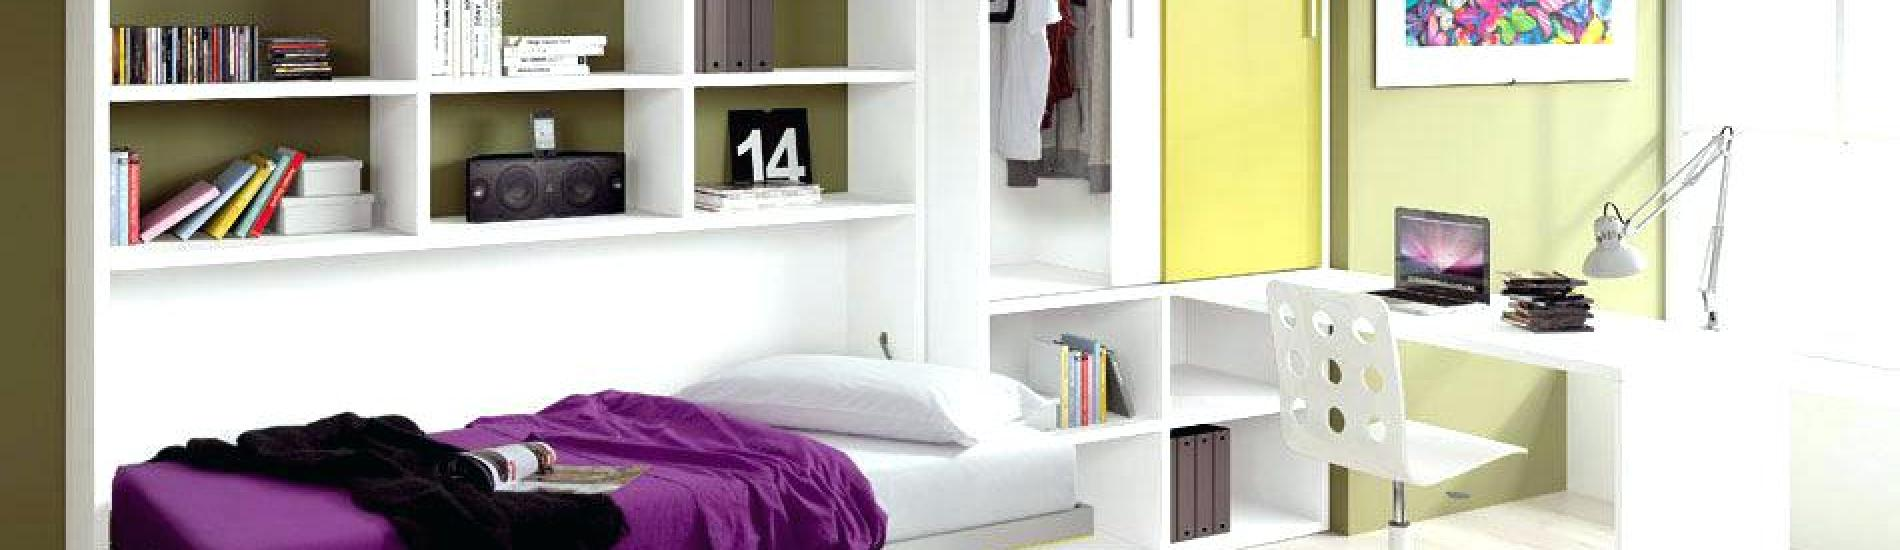 teen storage bed teen bedroom storage bedroom storage simple teenagers bedroom designs bedroom floor video home design 3d free